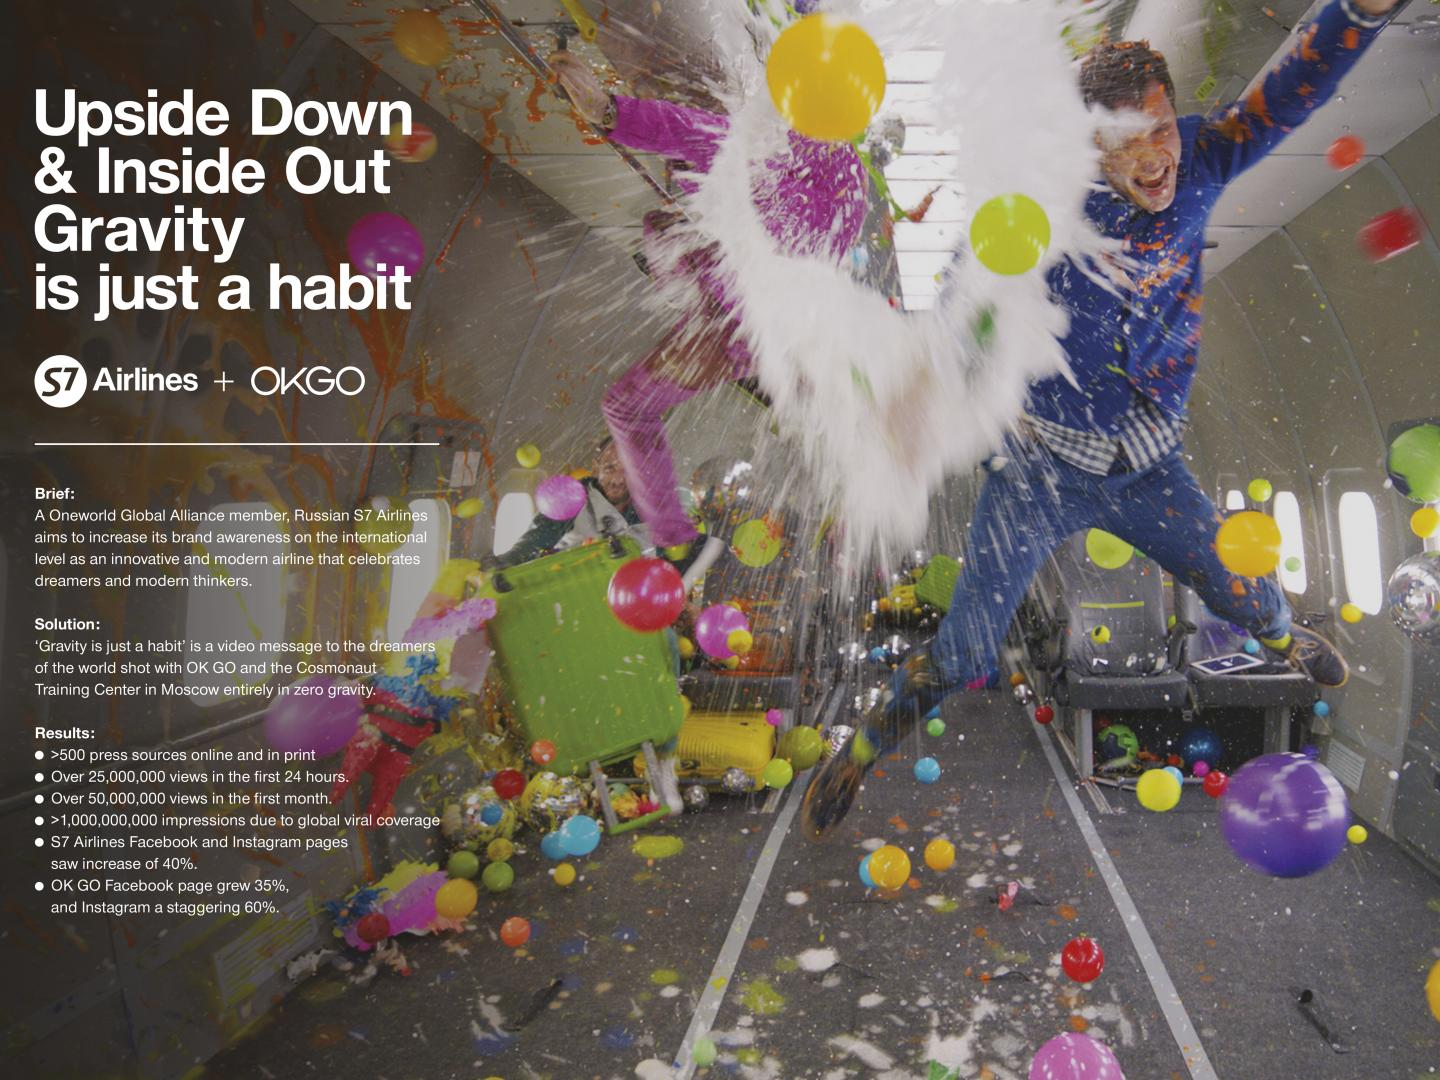 OK GO — Upside Down & Inside Out #GravitysJustAHabit Thumbnail